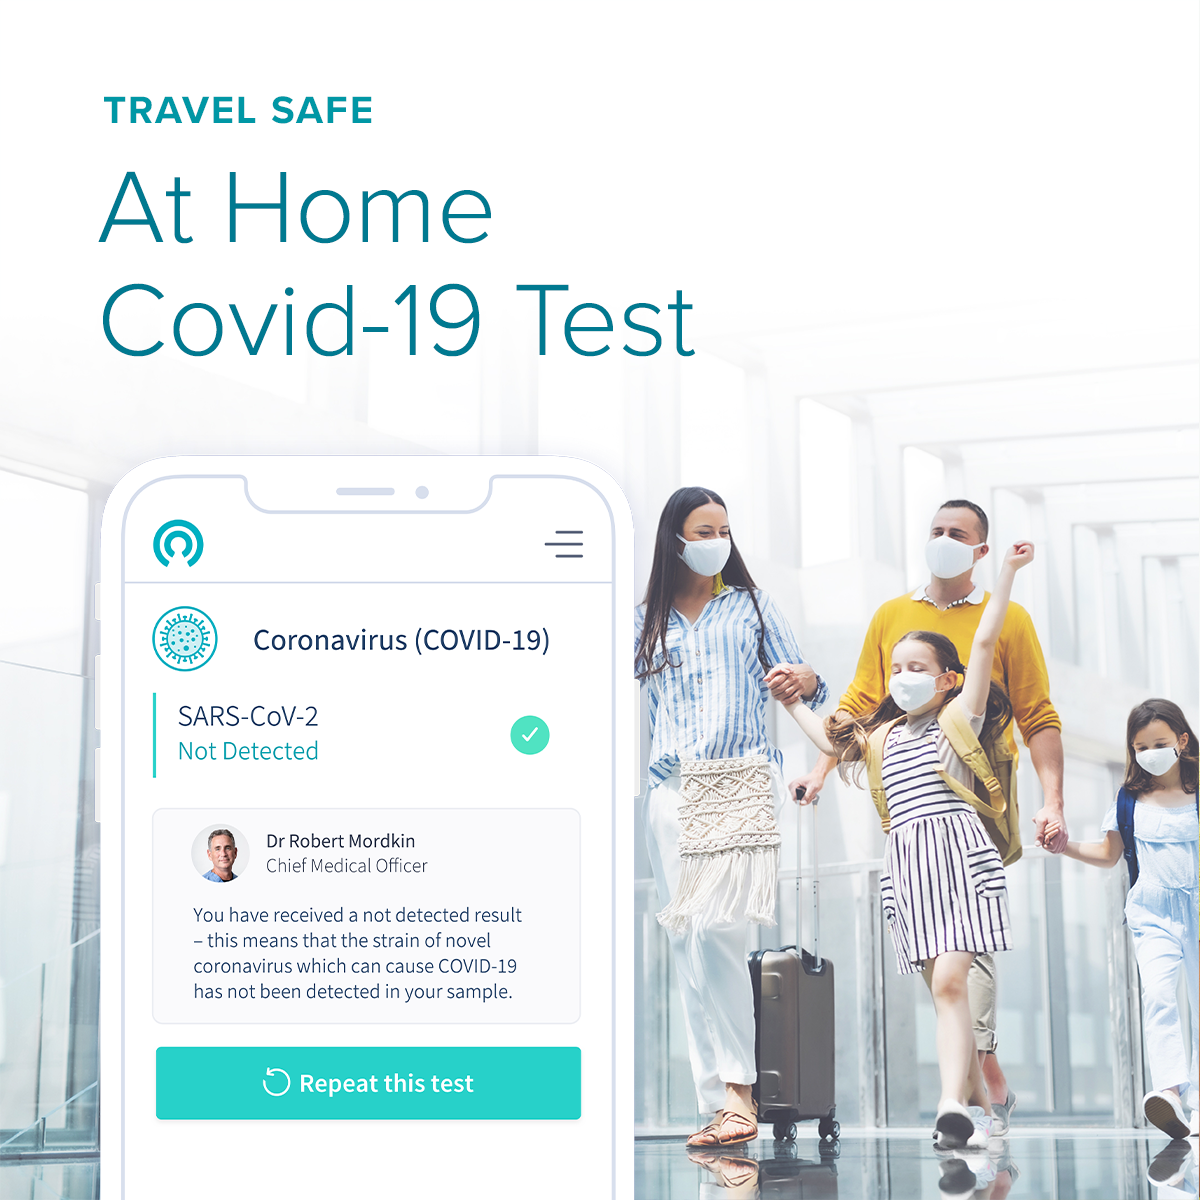 Need a COVID-19 Test for Travel?